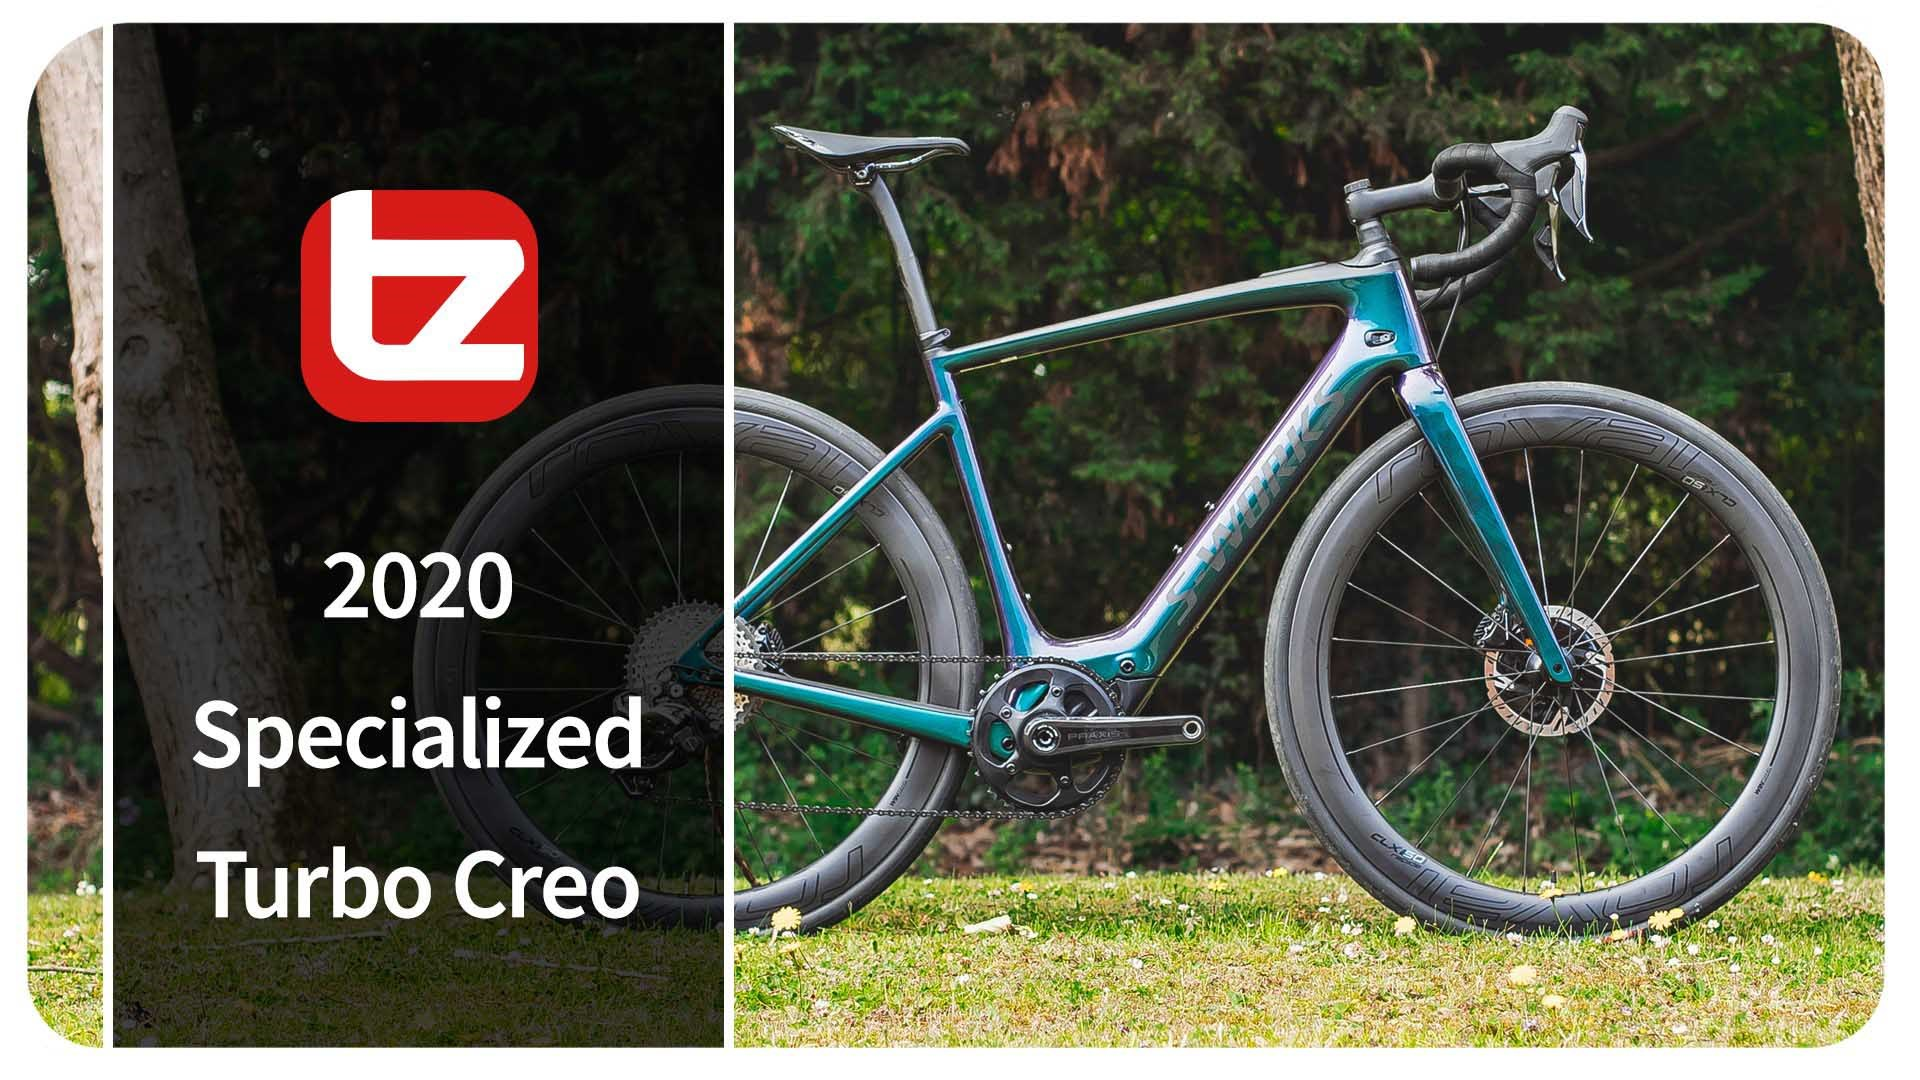 Specialized Turbo Creo 2020 - Electric Road Bike